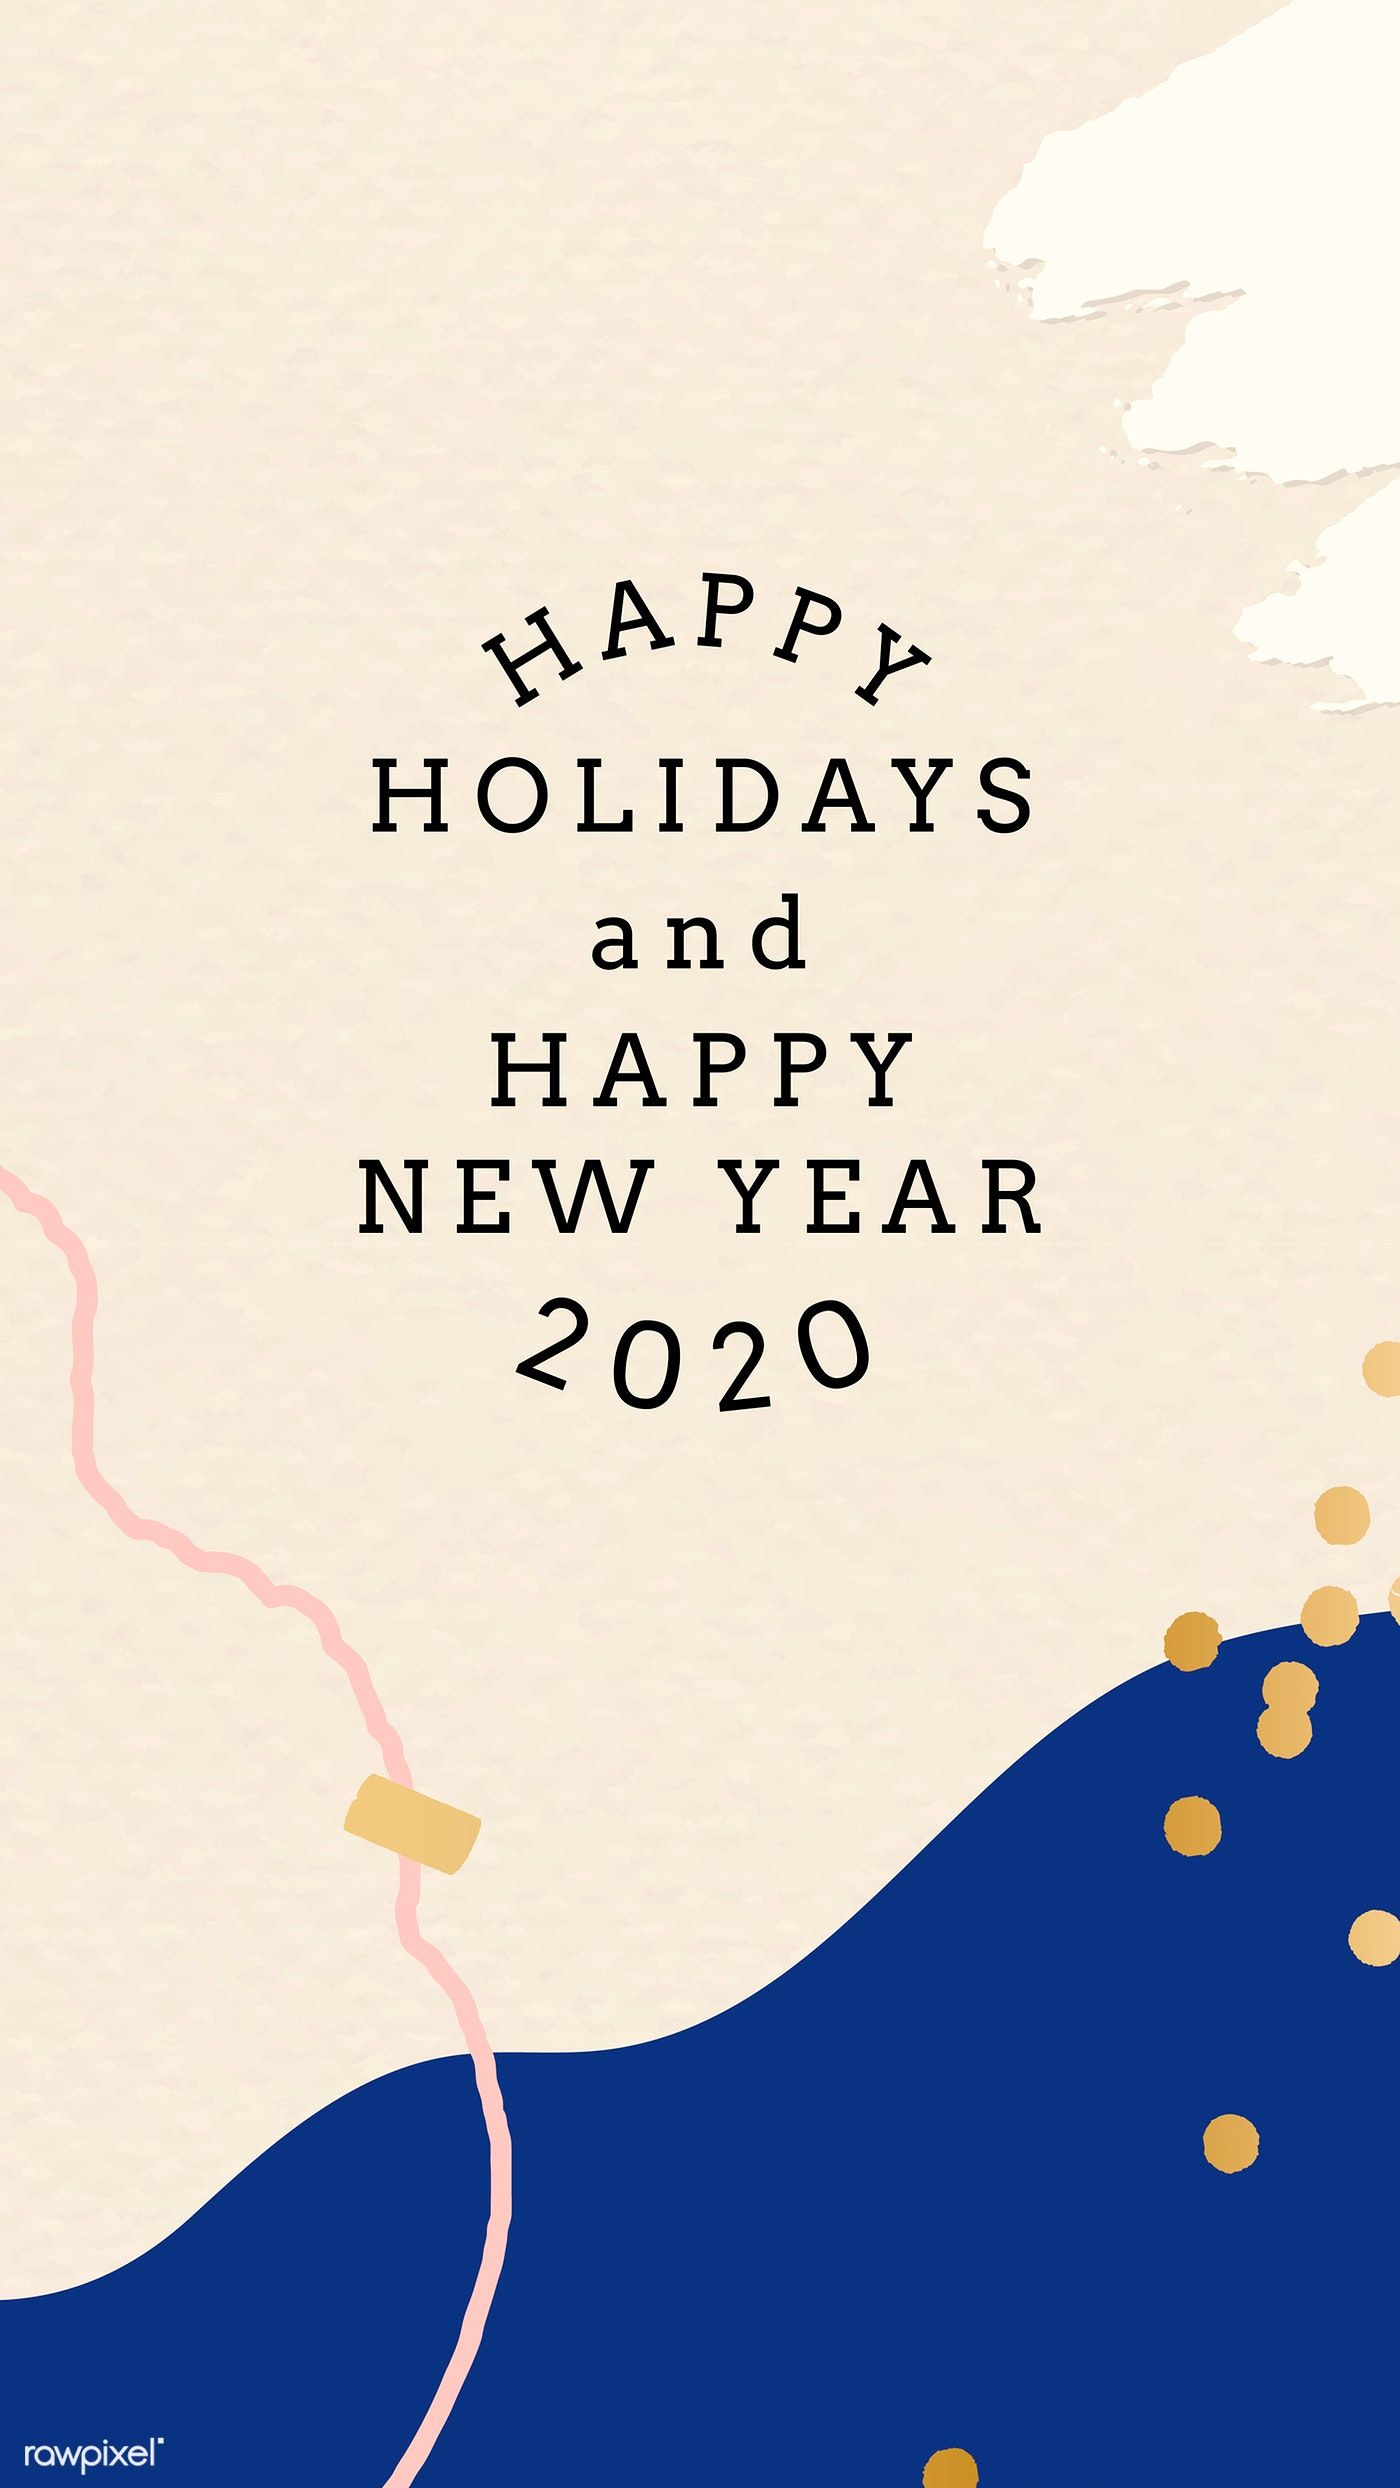 Download premium vector of Happy New Year 2020 Memphis design 1400x2488